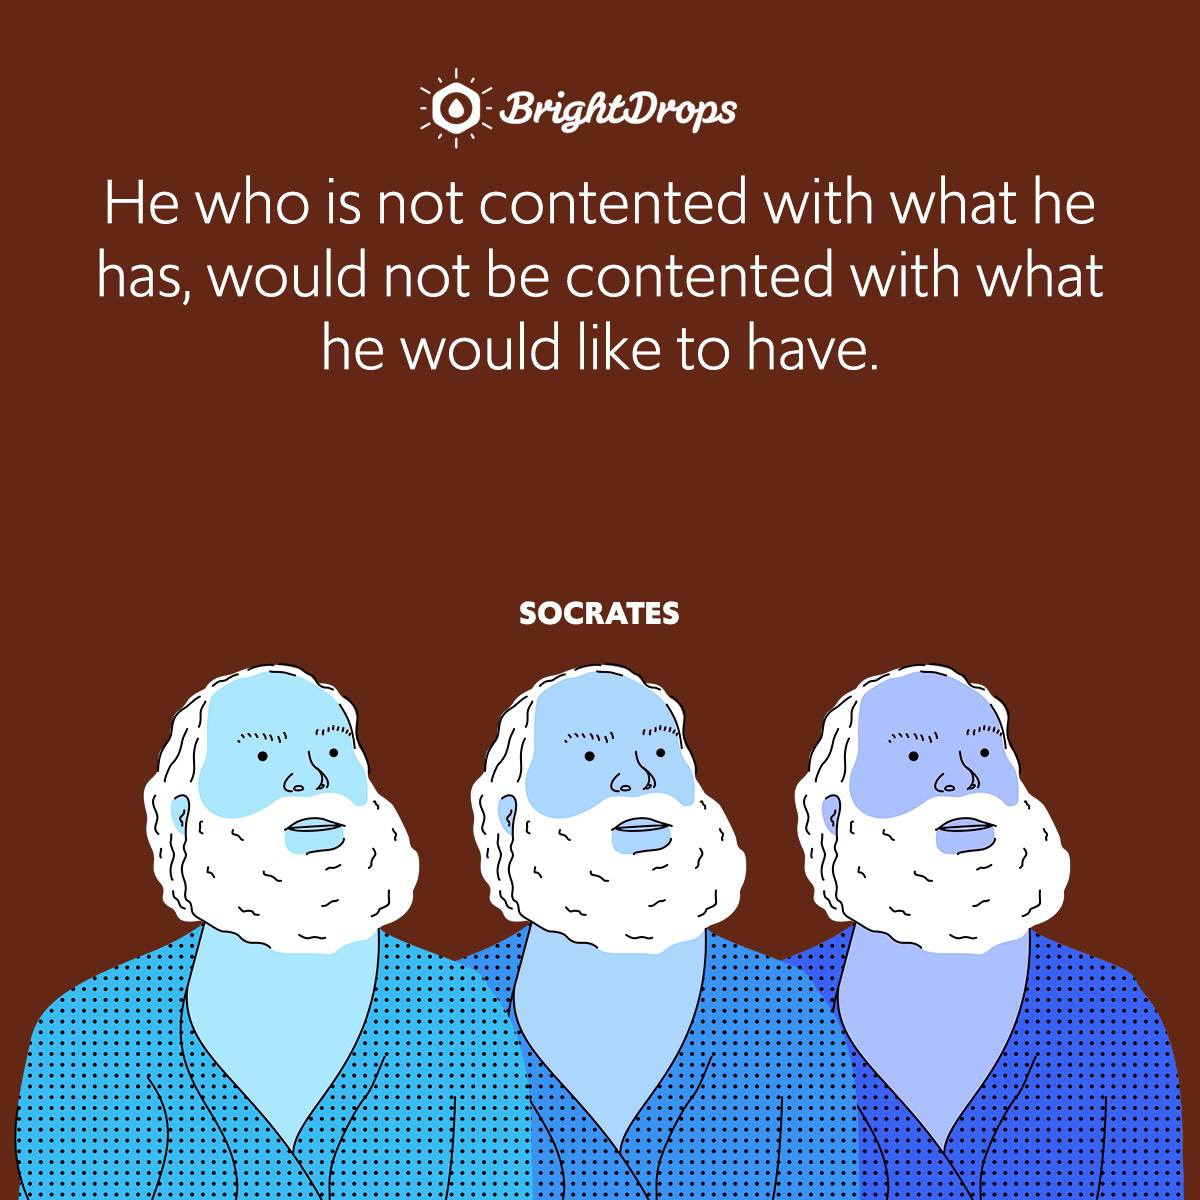 He who is not contented with what he has, would not be contented with what he would like to have.